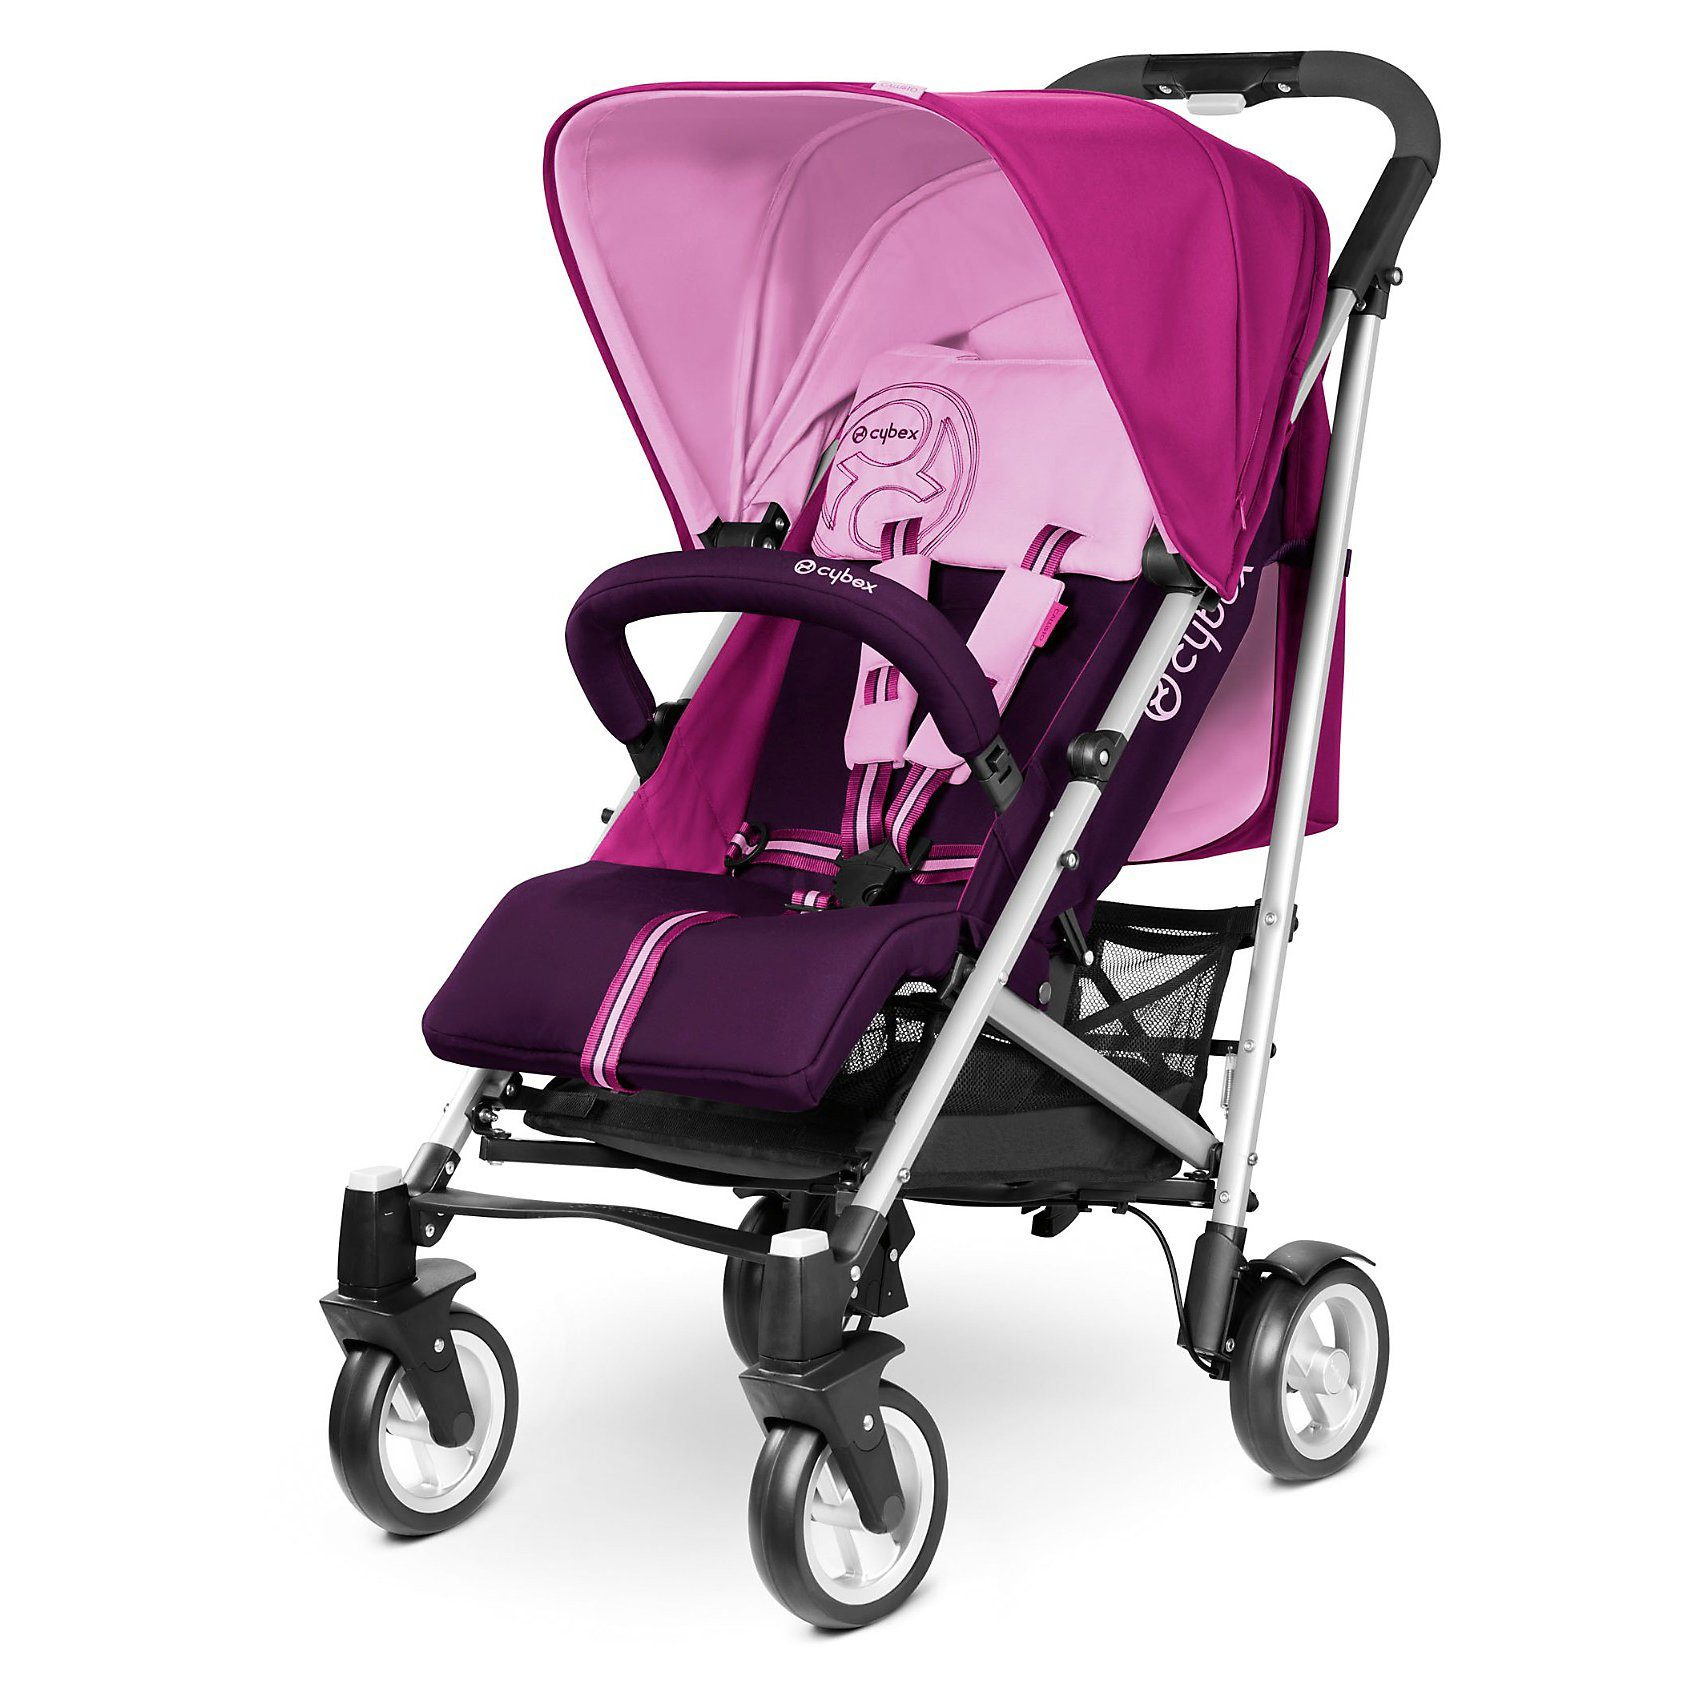 Cybex Buggy Callisto, Lollipop, 2014